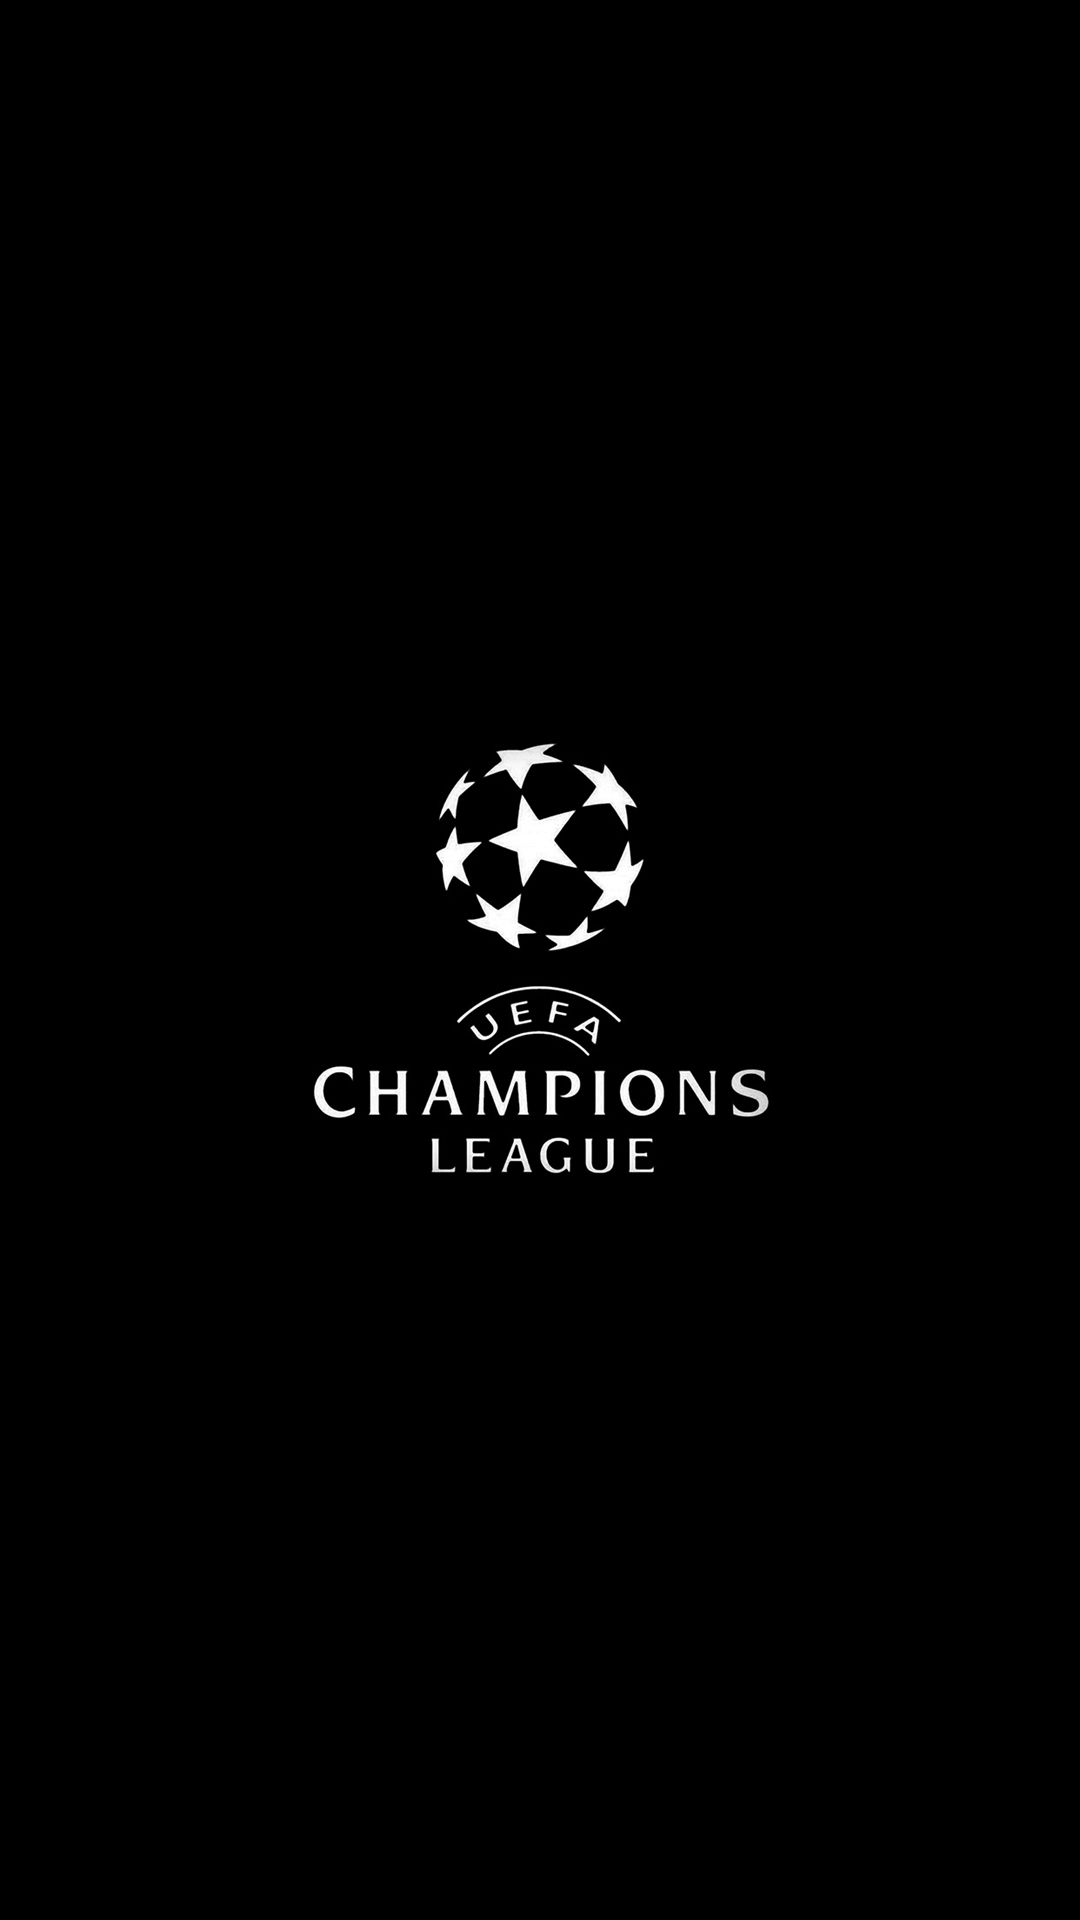 champions league europe logo soccer art illustration dark bw iphone 6 wallpaper soccer art champions league champions league logo champions league europe logo soccer art